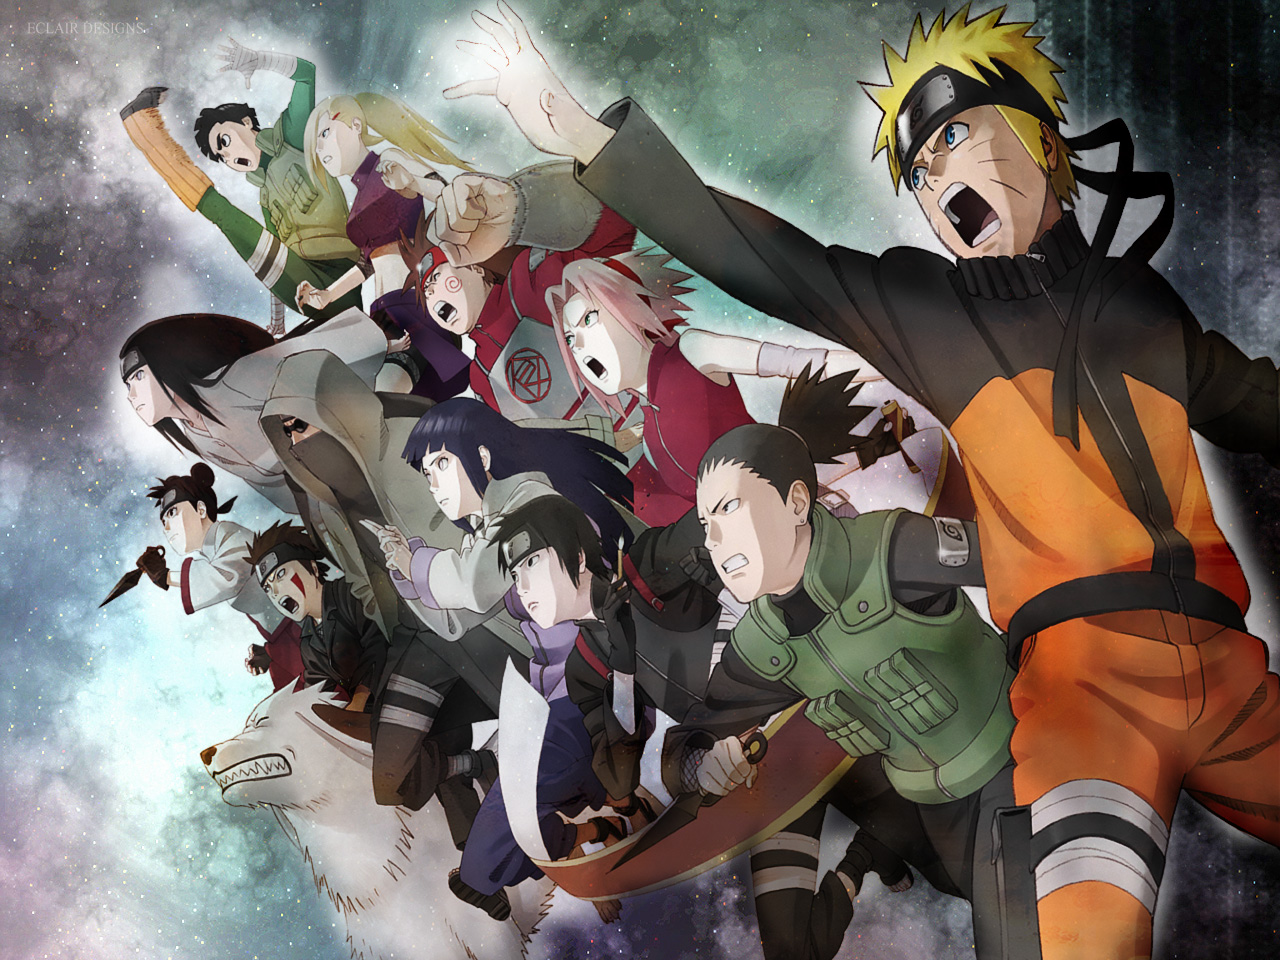 Best 33 Naruto Characters Wallpapers for Desktop on